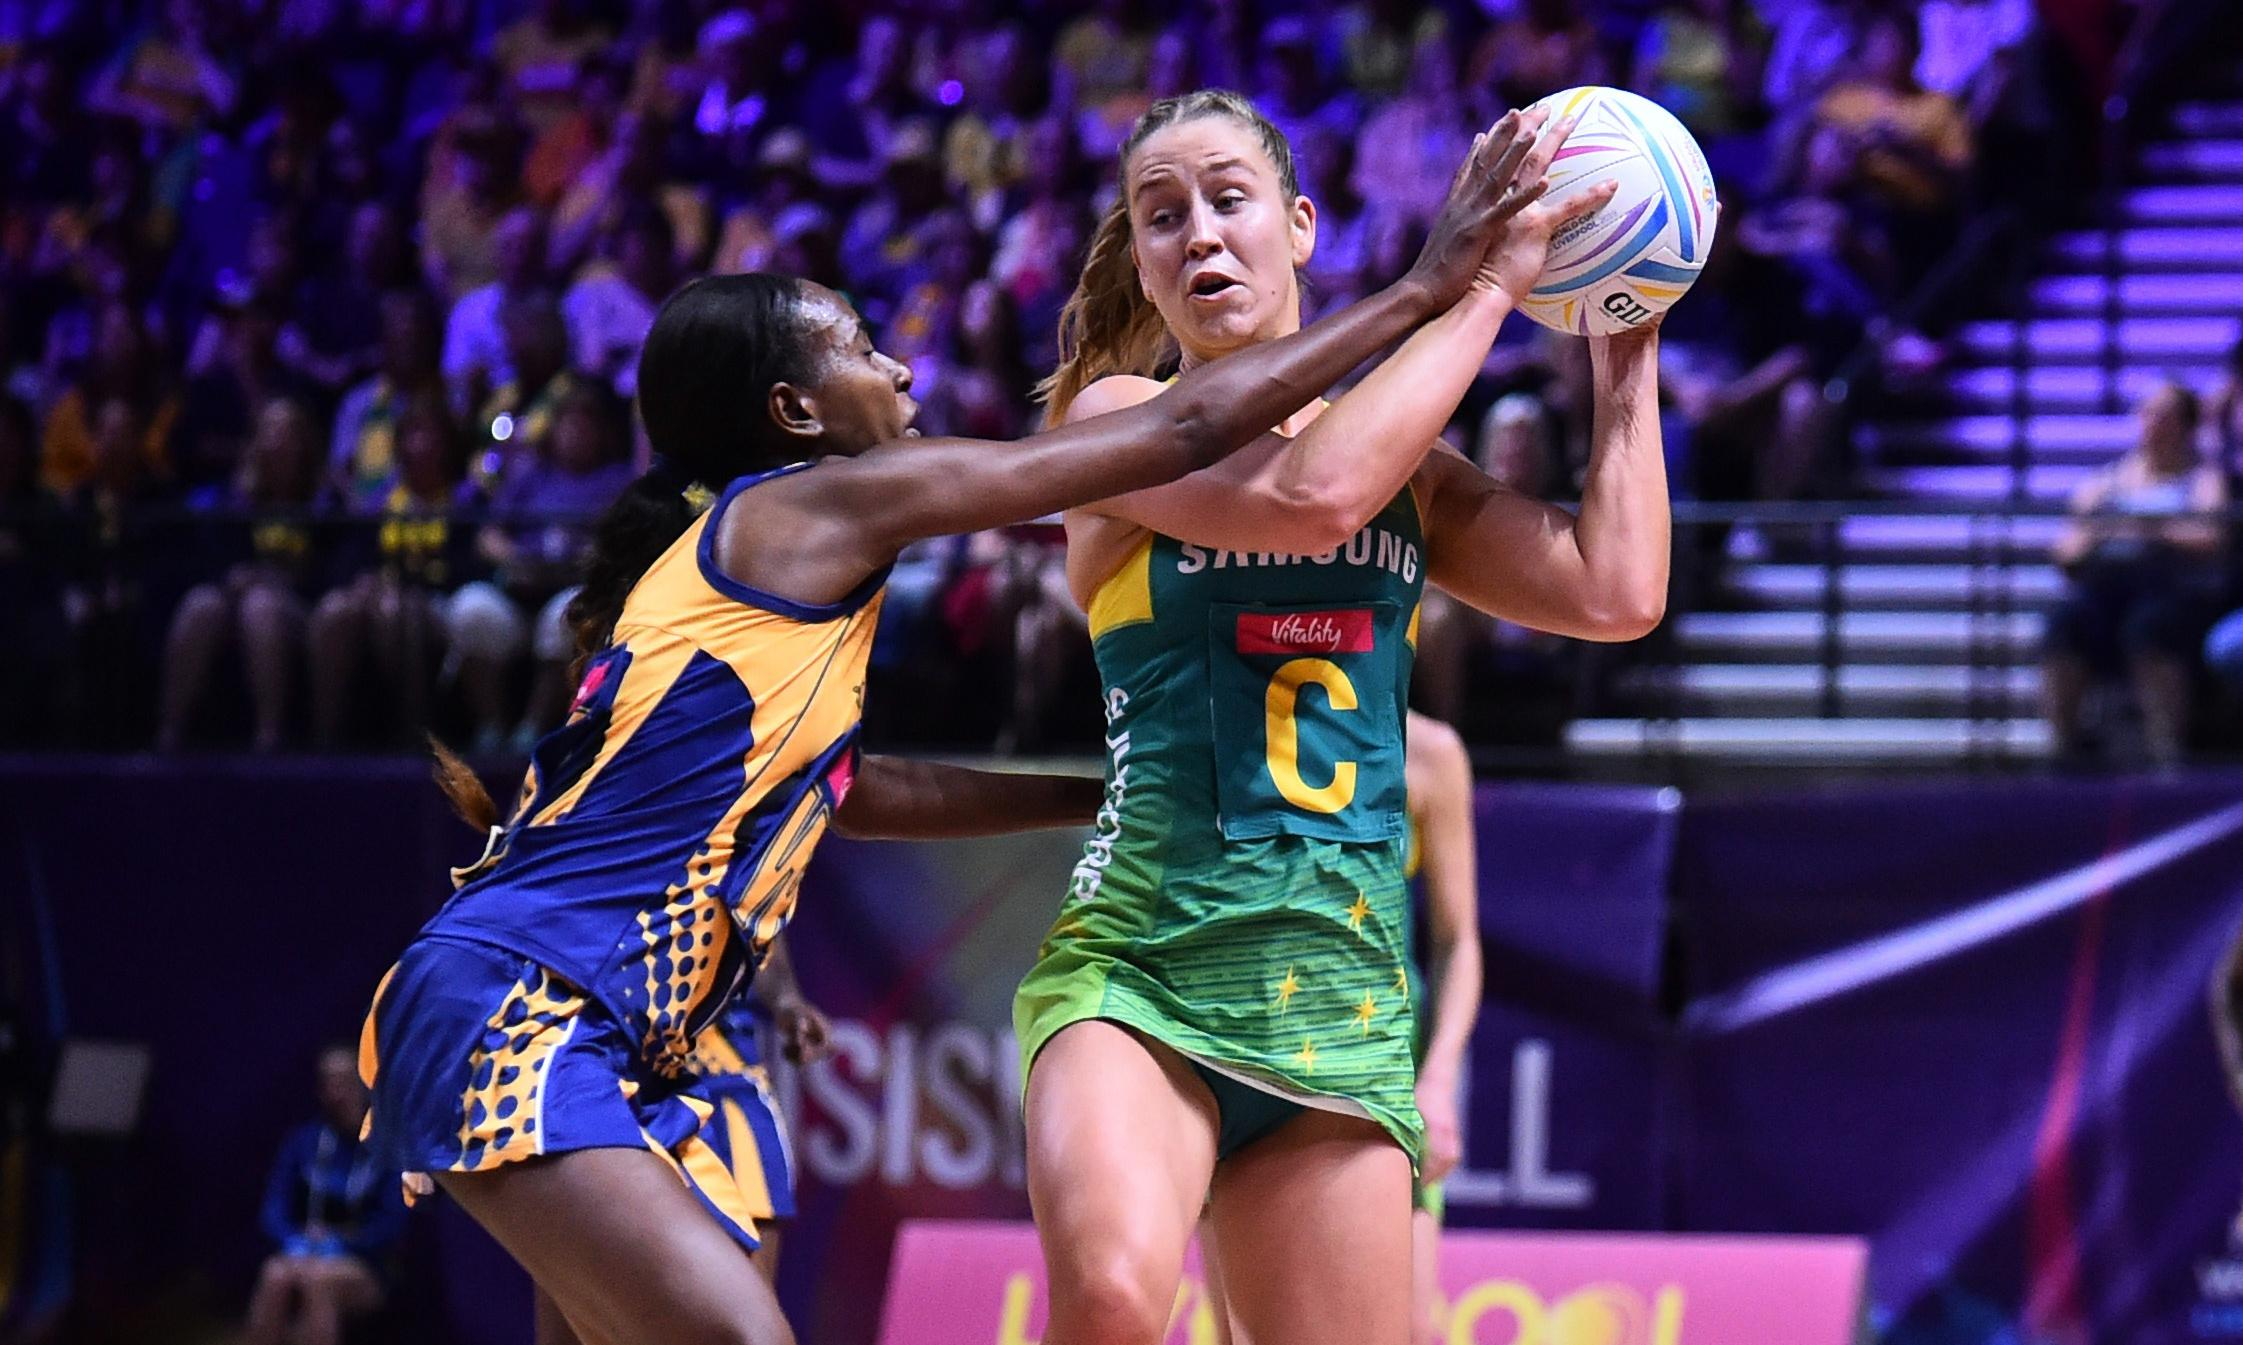 Australia coach questions World Cup format after Diamonds demolish Barbados